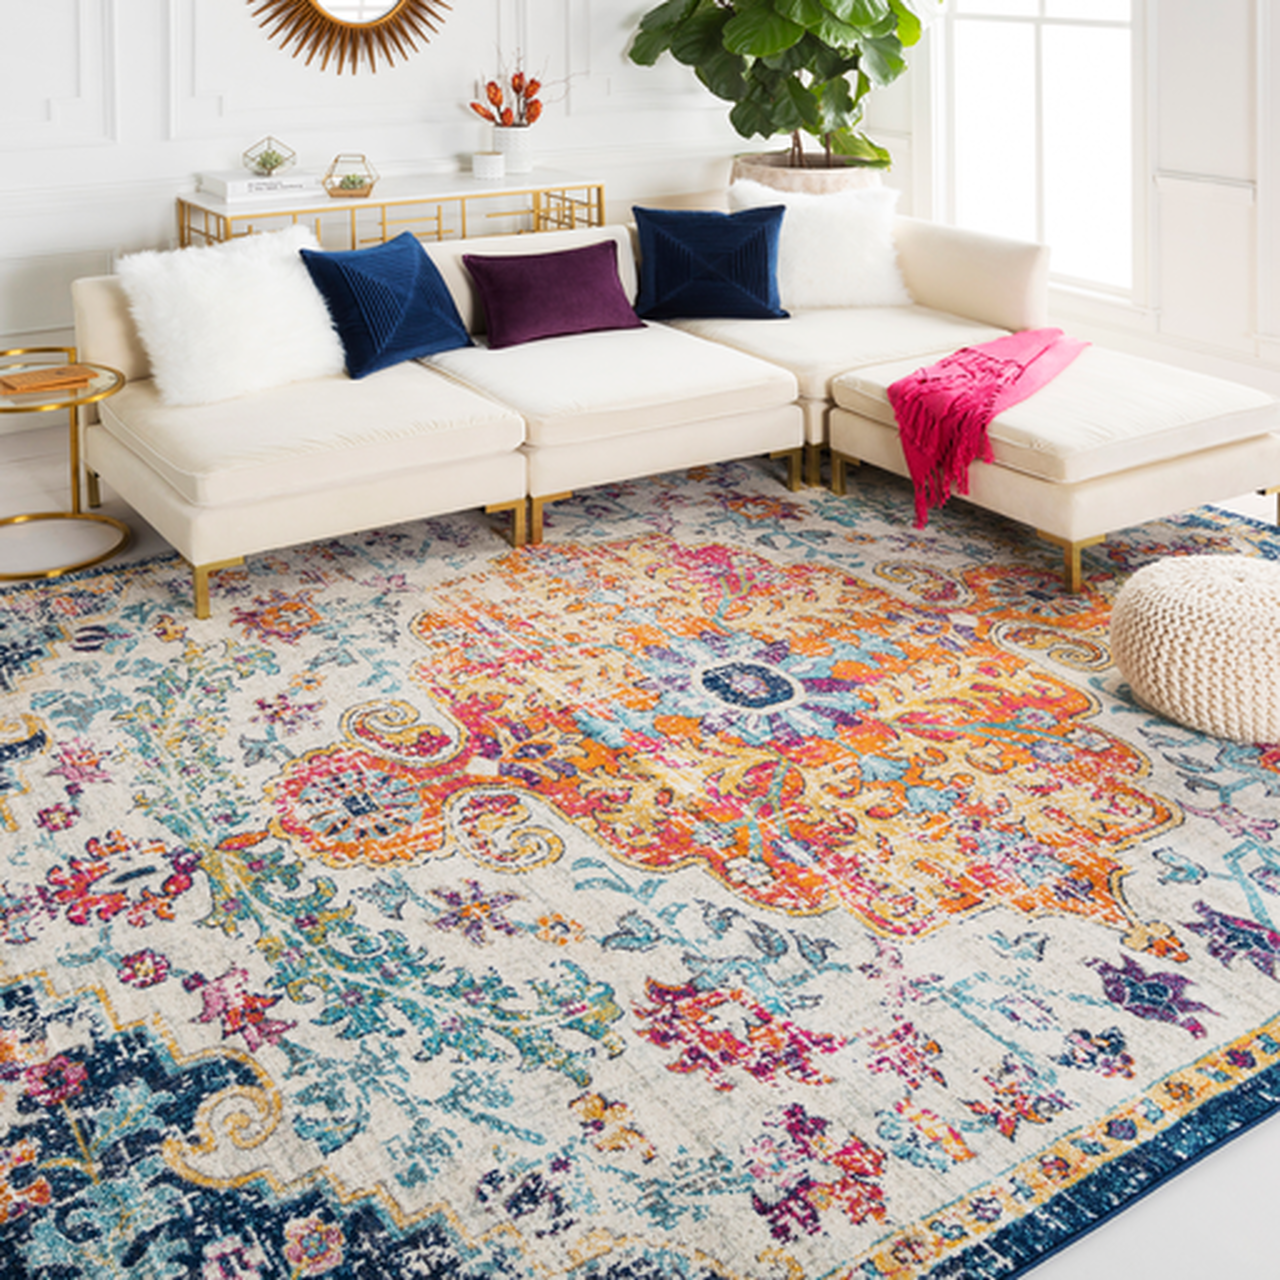 The rug, featuring a colorful vintage-inspired pattern